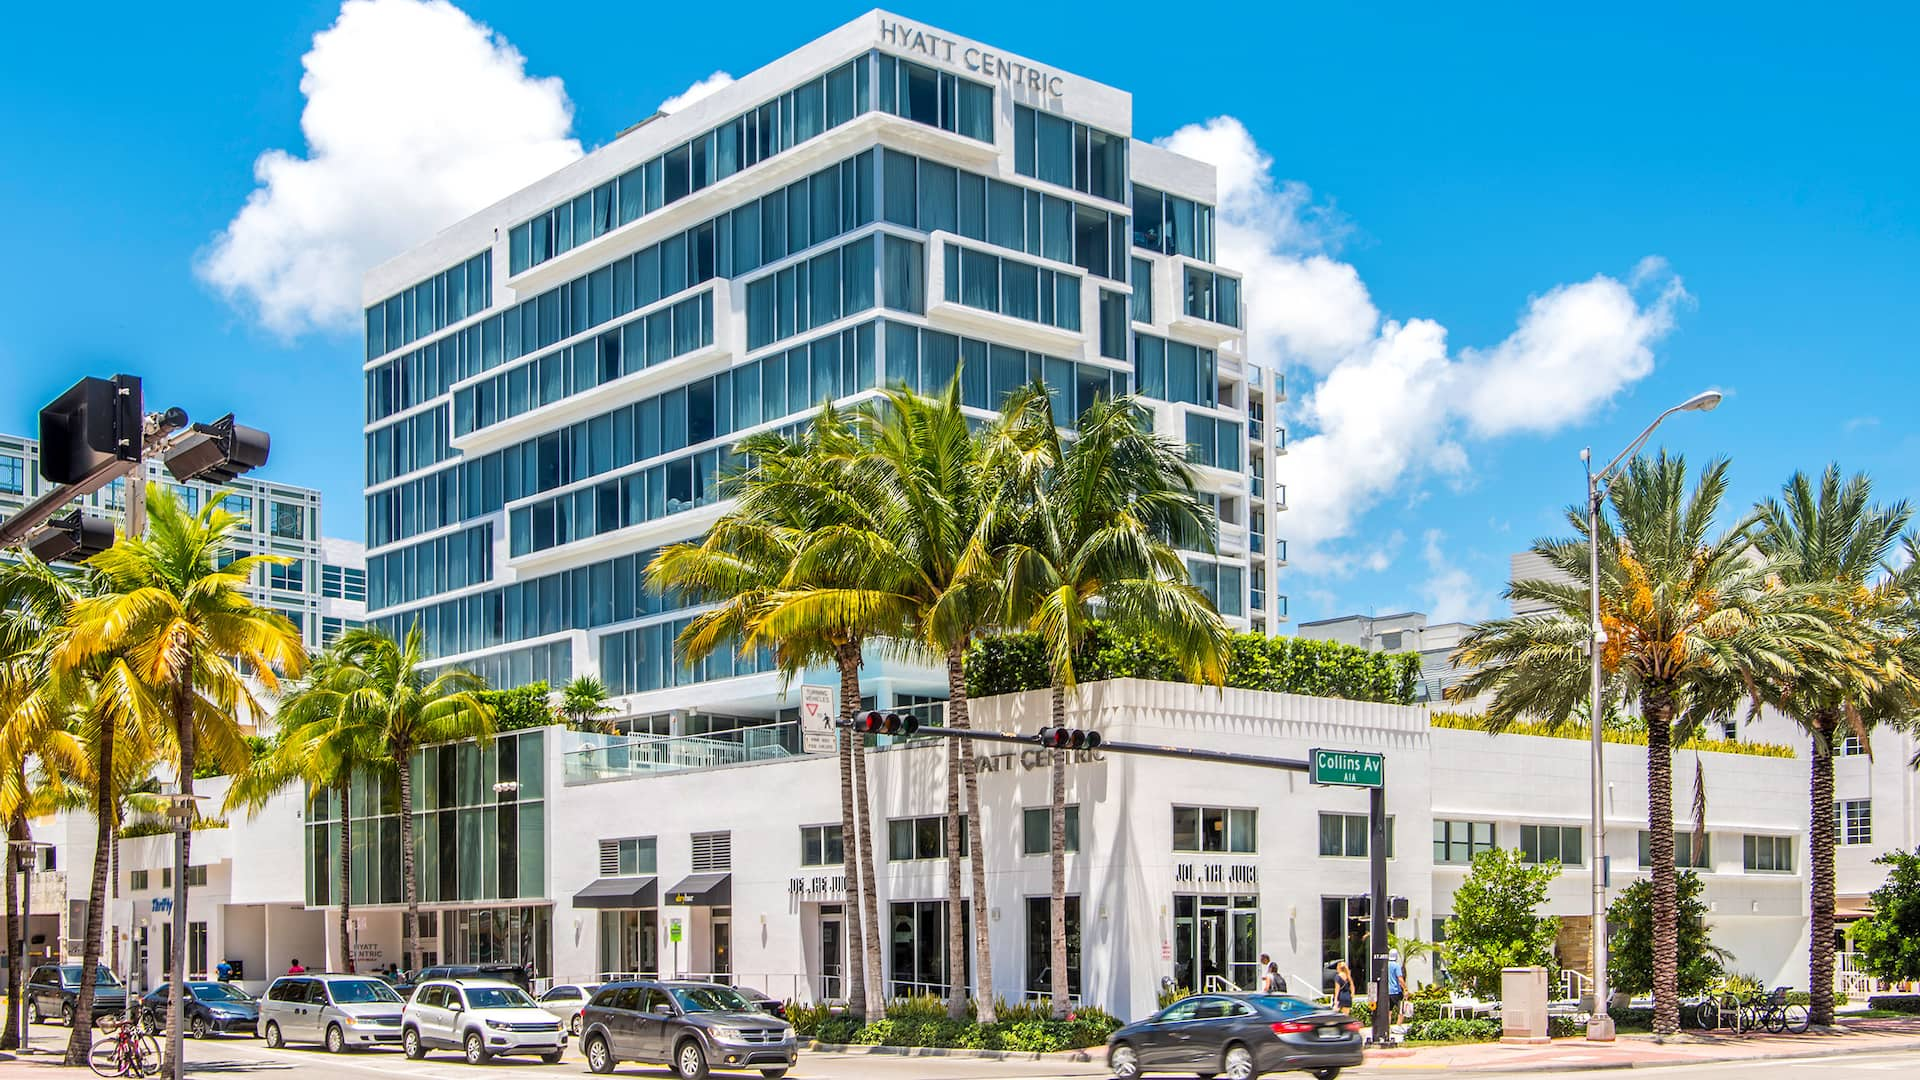 Hyatt Centric South Beach Miami Hotel Exterior Photo